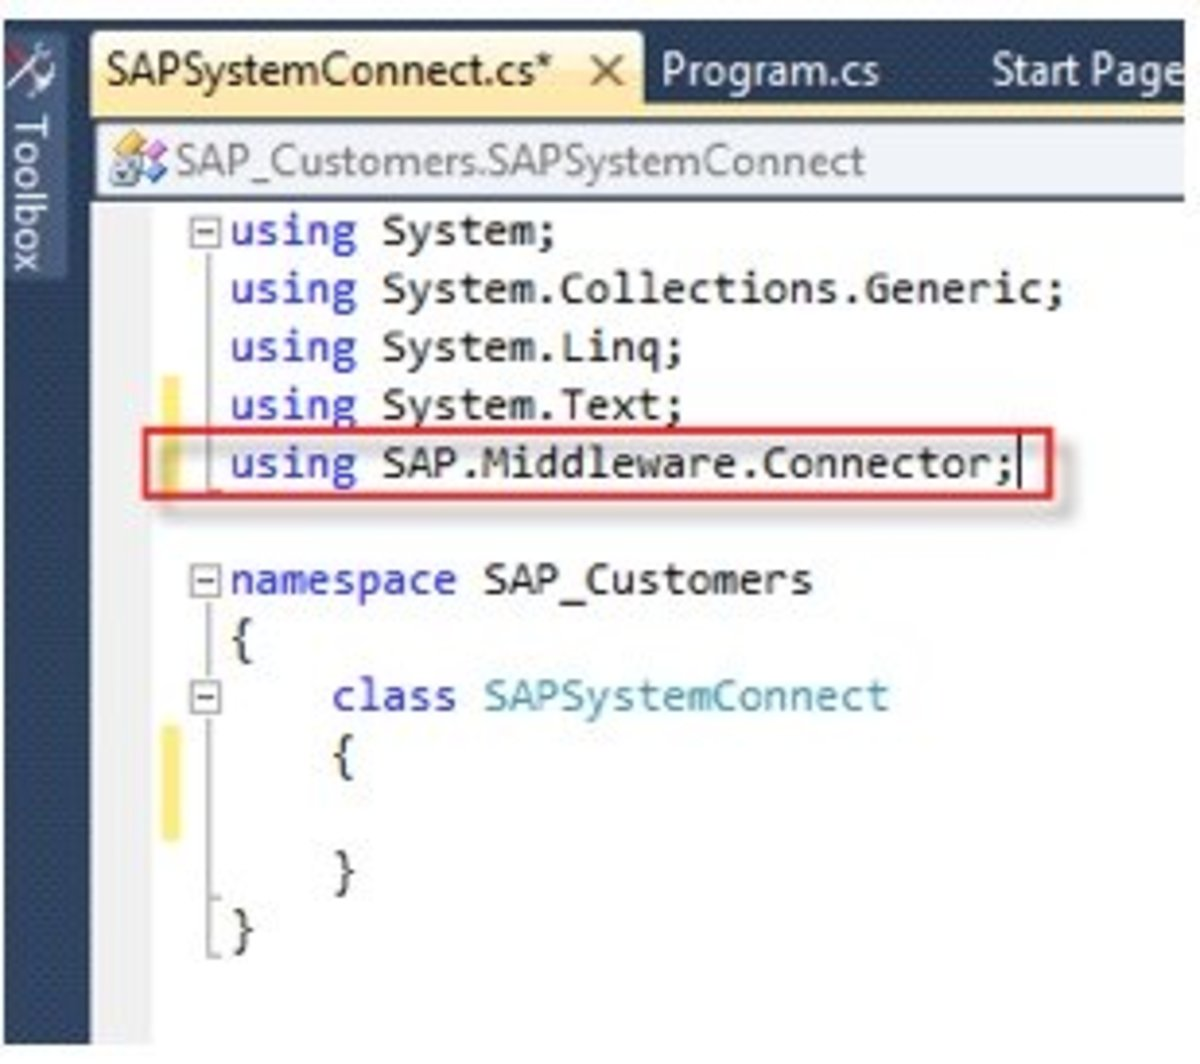 Add the Connector Reference to the Class.